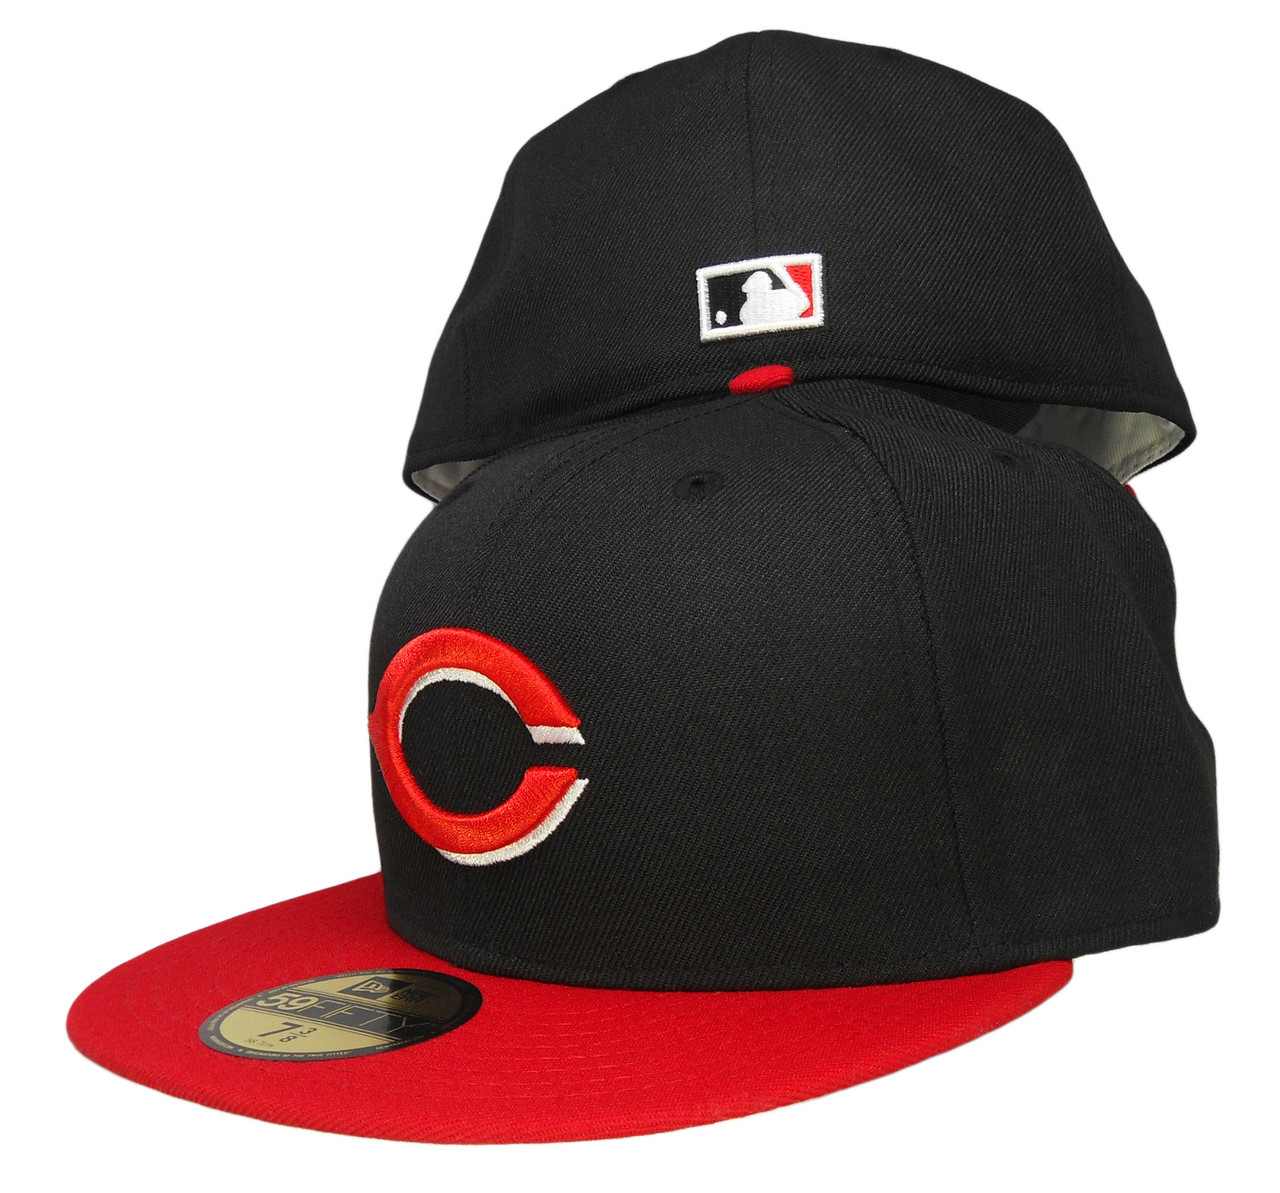 11cc1943629 Cincinnati Reds New Era Gray bottom 59Fifty Fitted Hat - Black